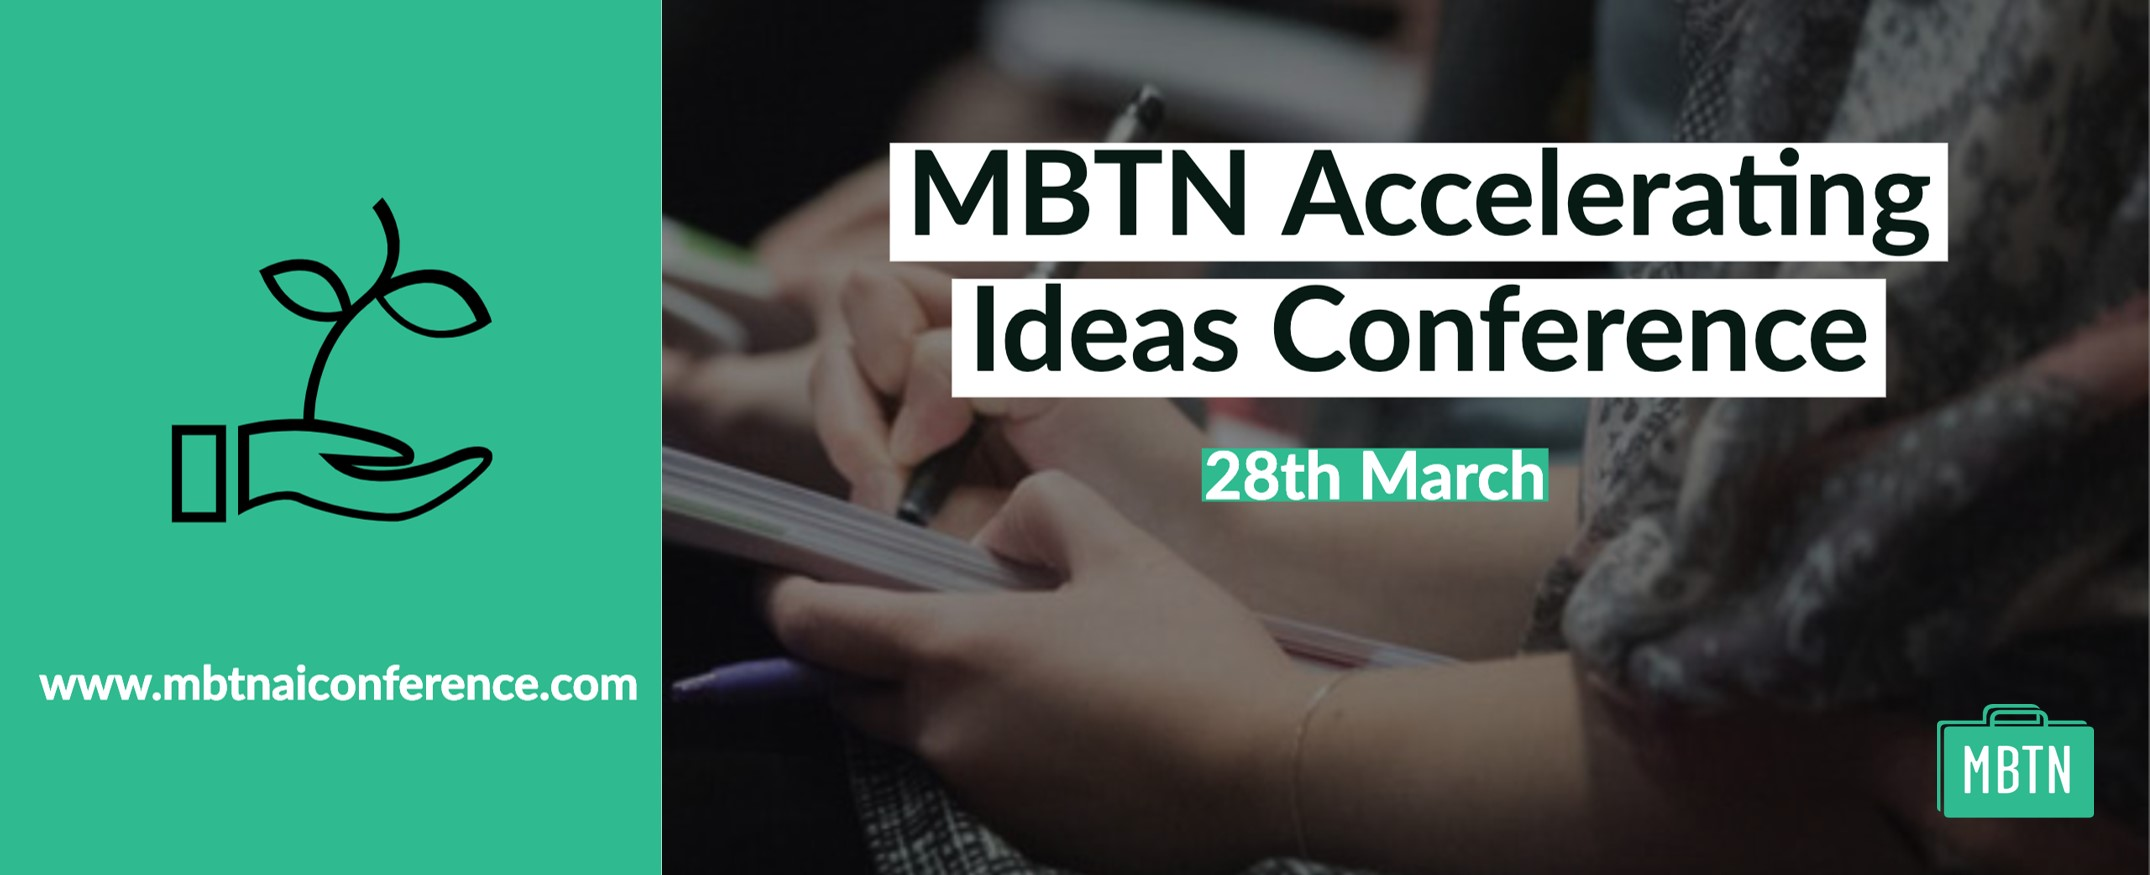 MBTN - MBTN Accelerating Ideas Conference Movemeback African event cover image